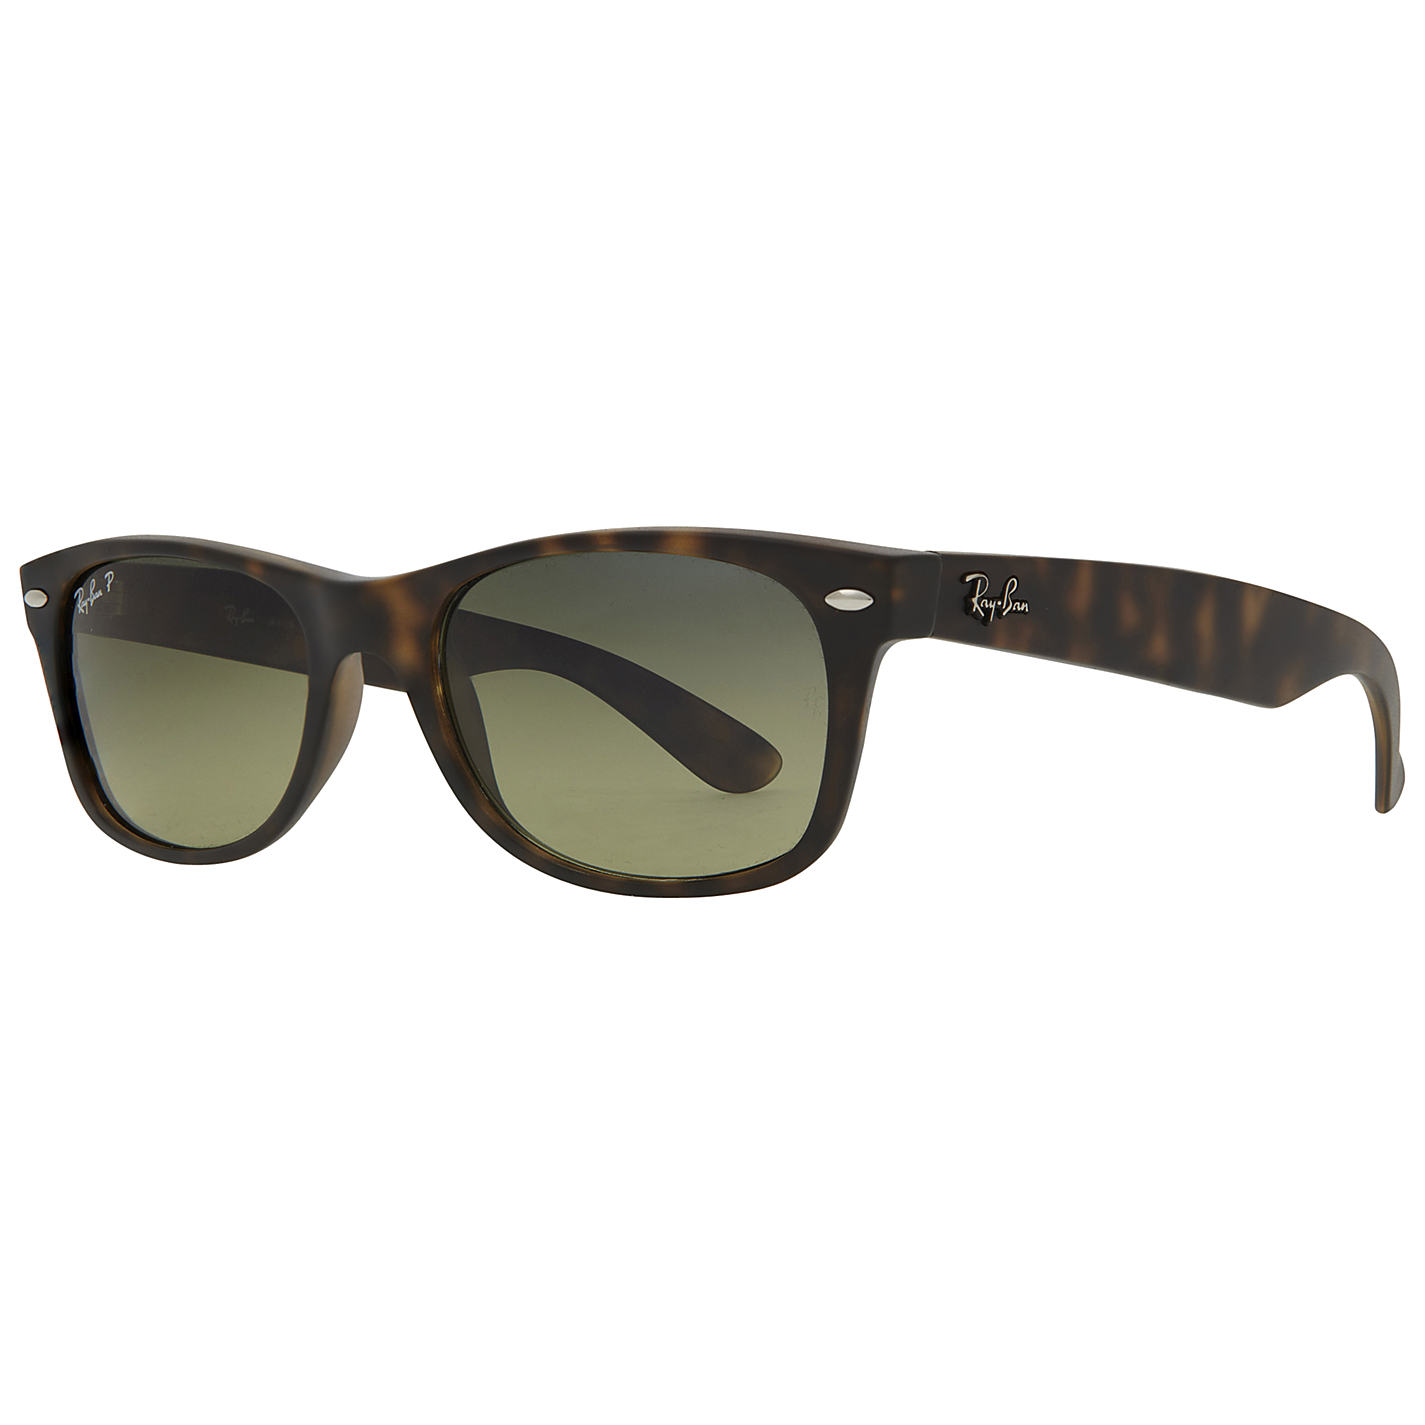 Ray Ban Rb2132 New Wayfarer Polarised Sunglasses Matte Havana P477778 Ray Ban Wayfarer Sale